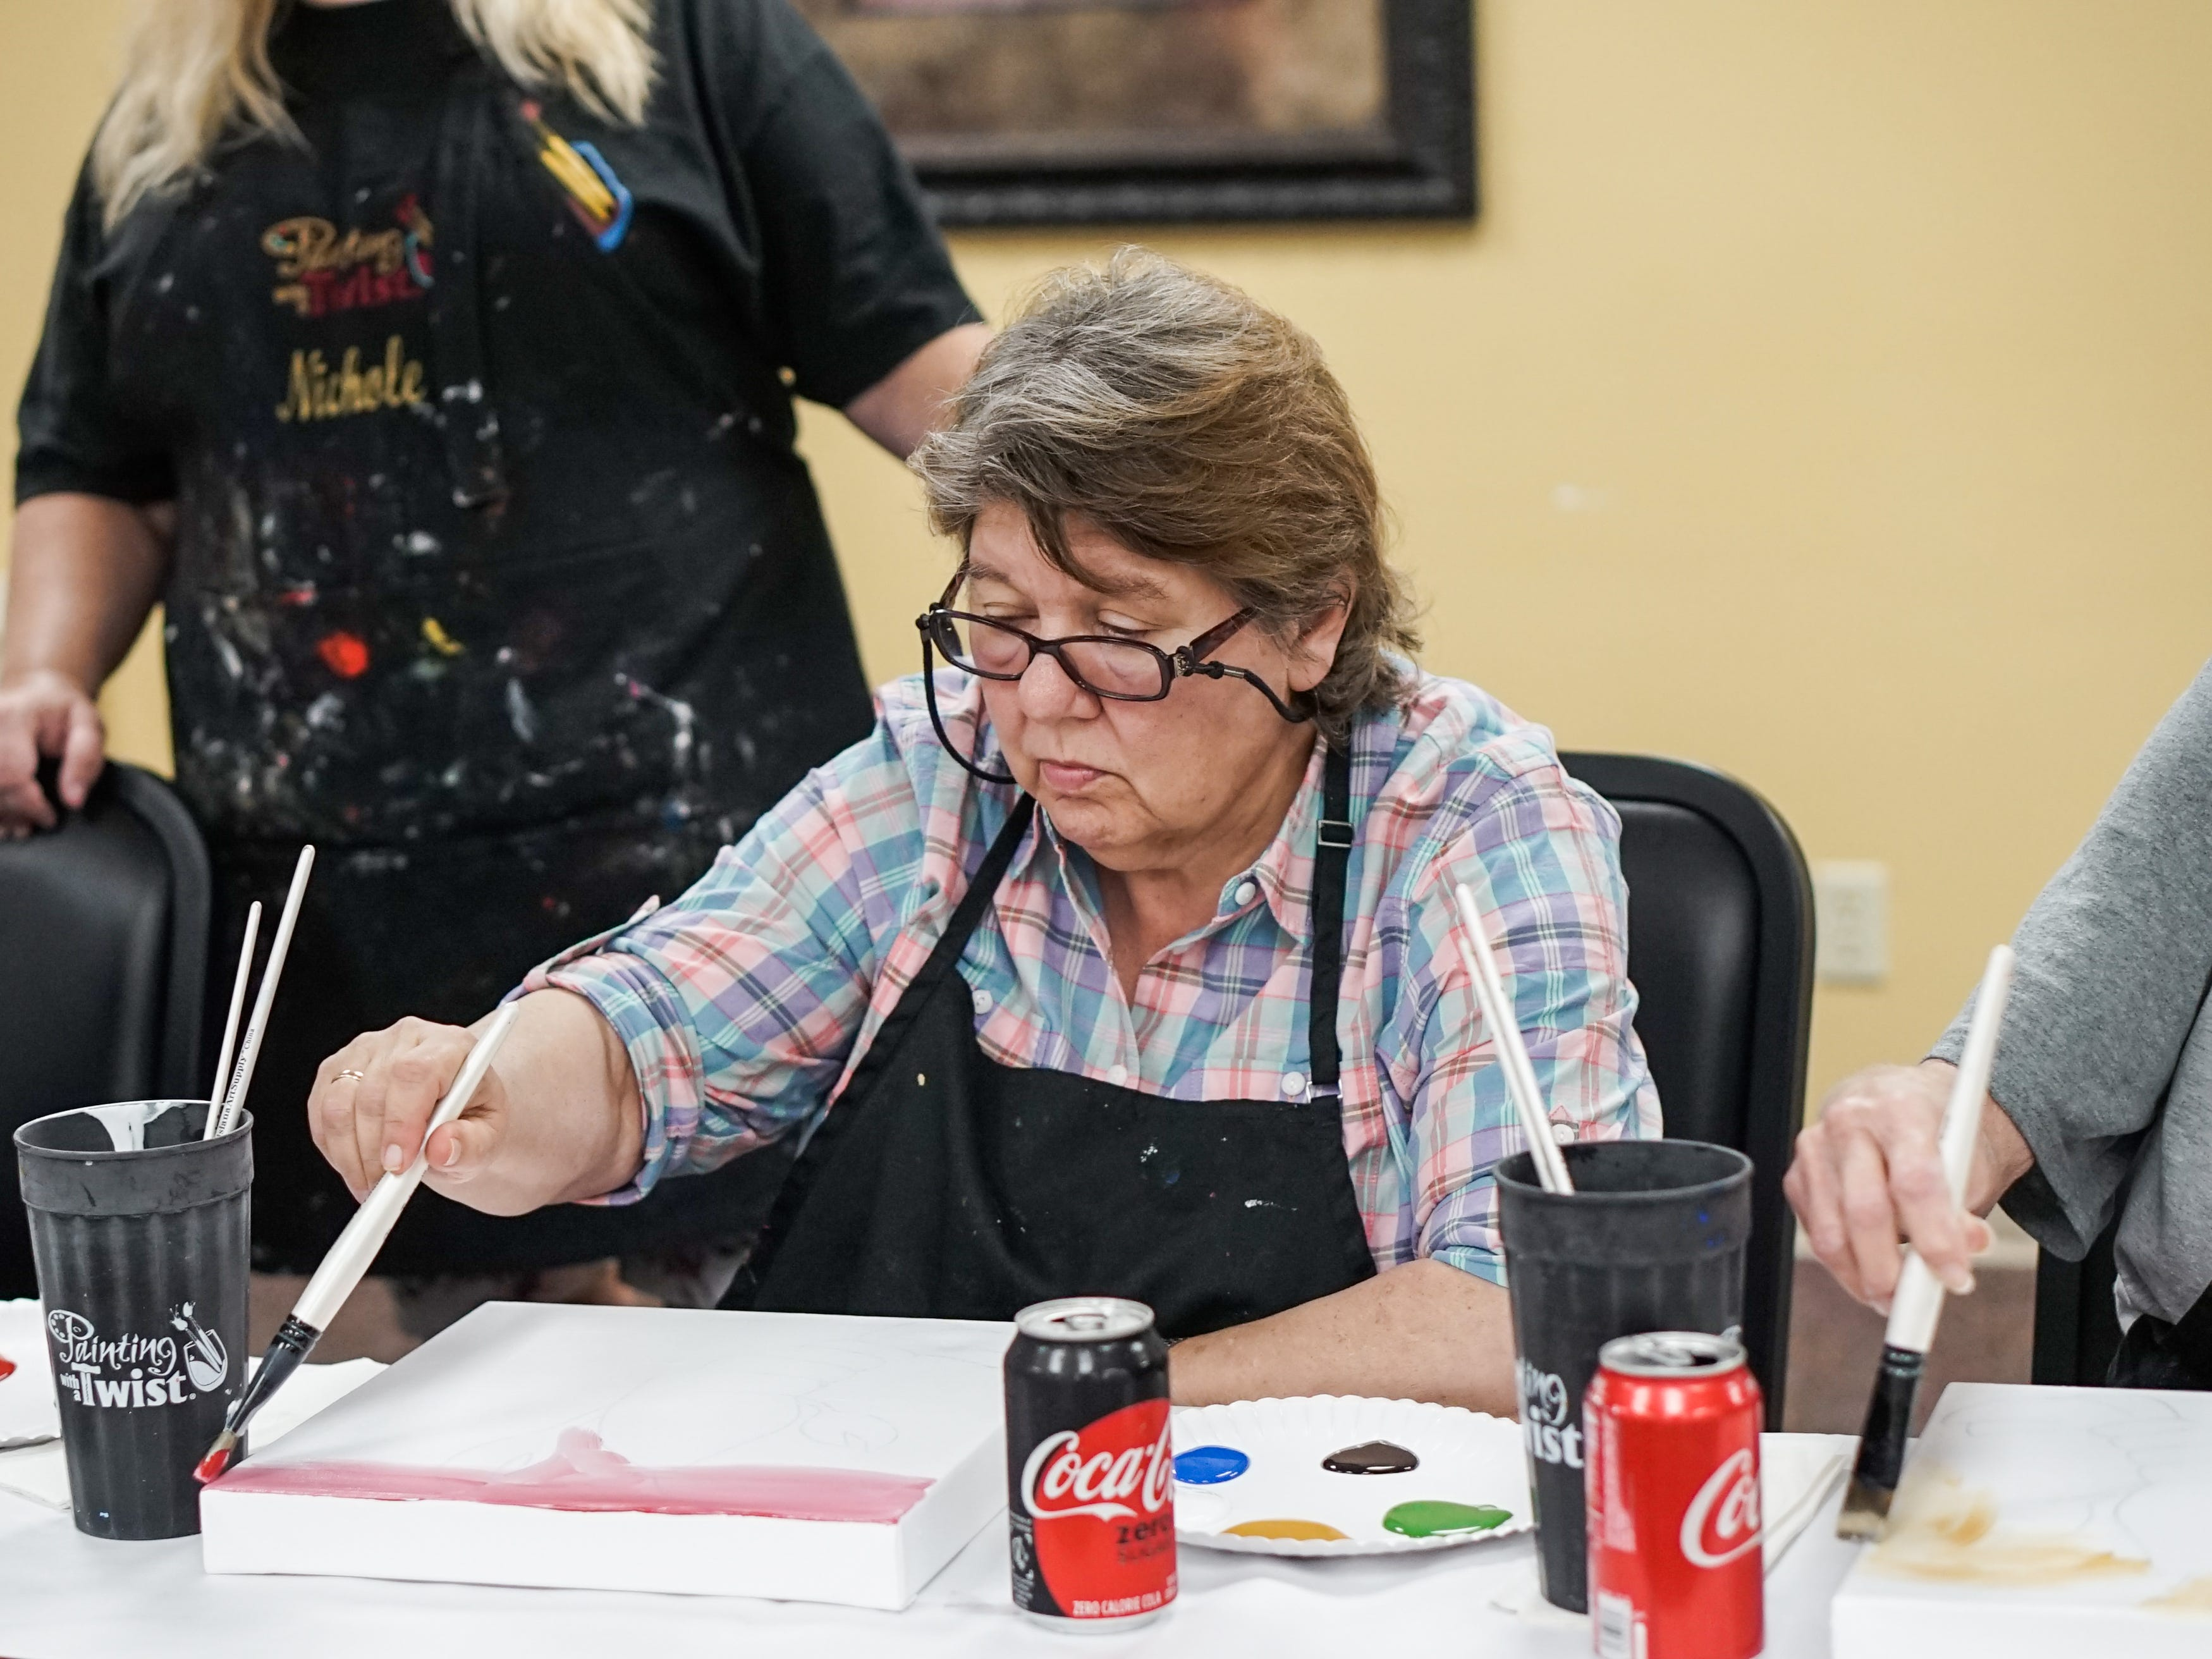 Former stroke patients who are members of Lafayette General Medical Center's Acadiana Stroke Support Group celebrated their recovery by painting a crawfish portrait in conjunction with Painting with a Twist May 14.